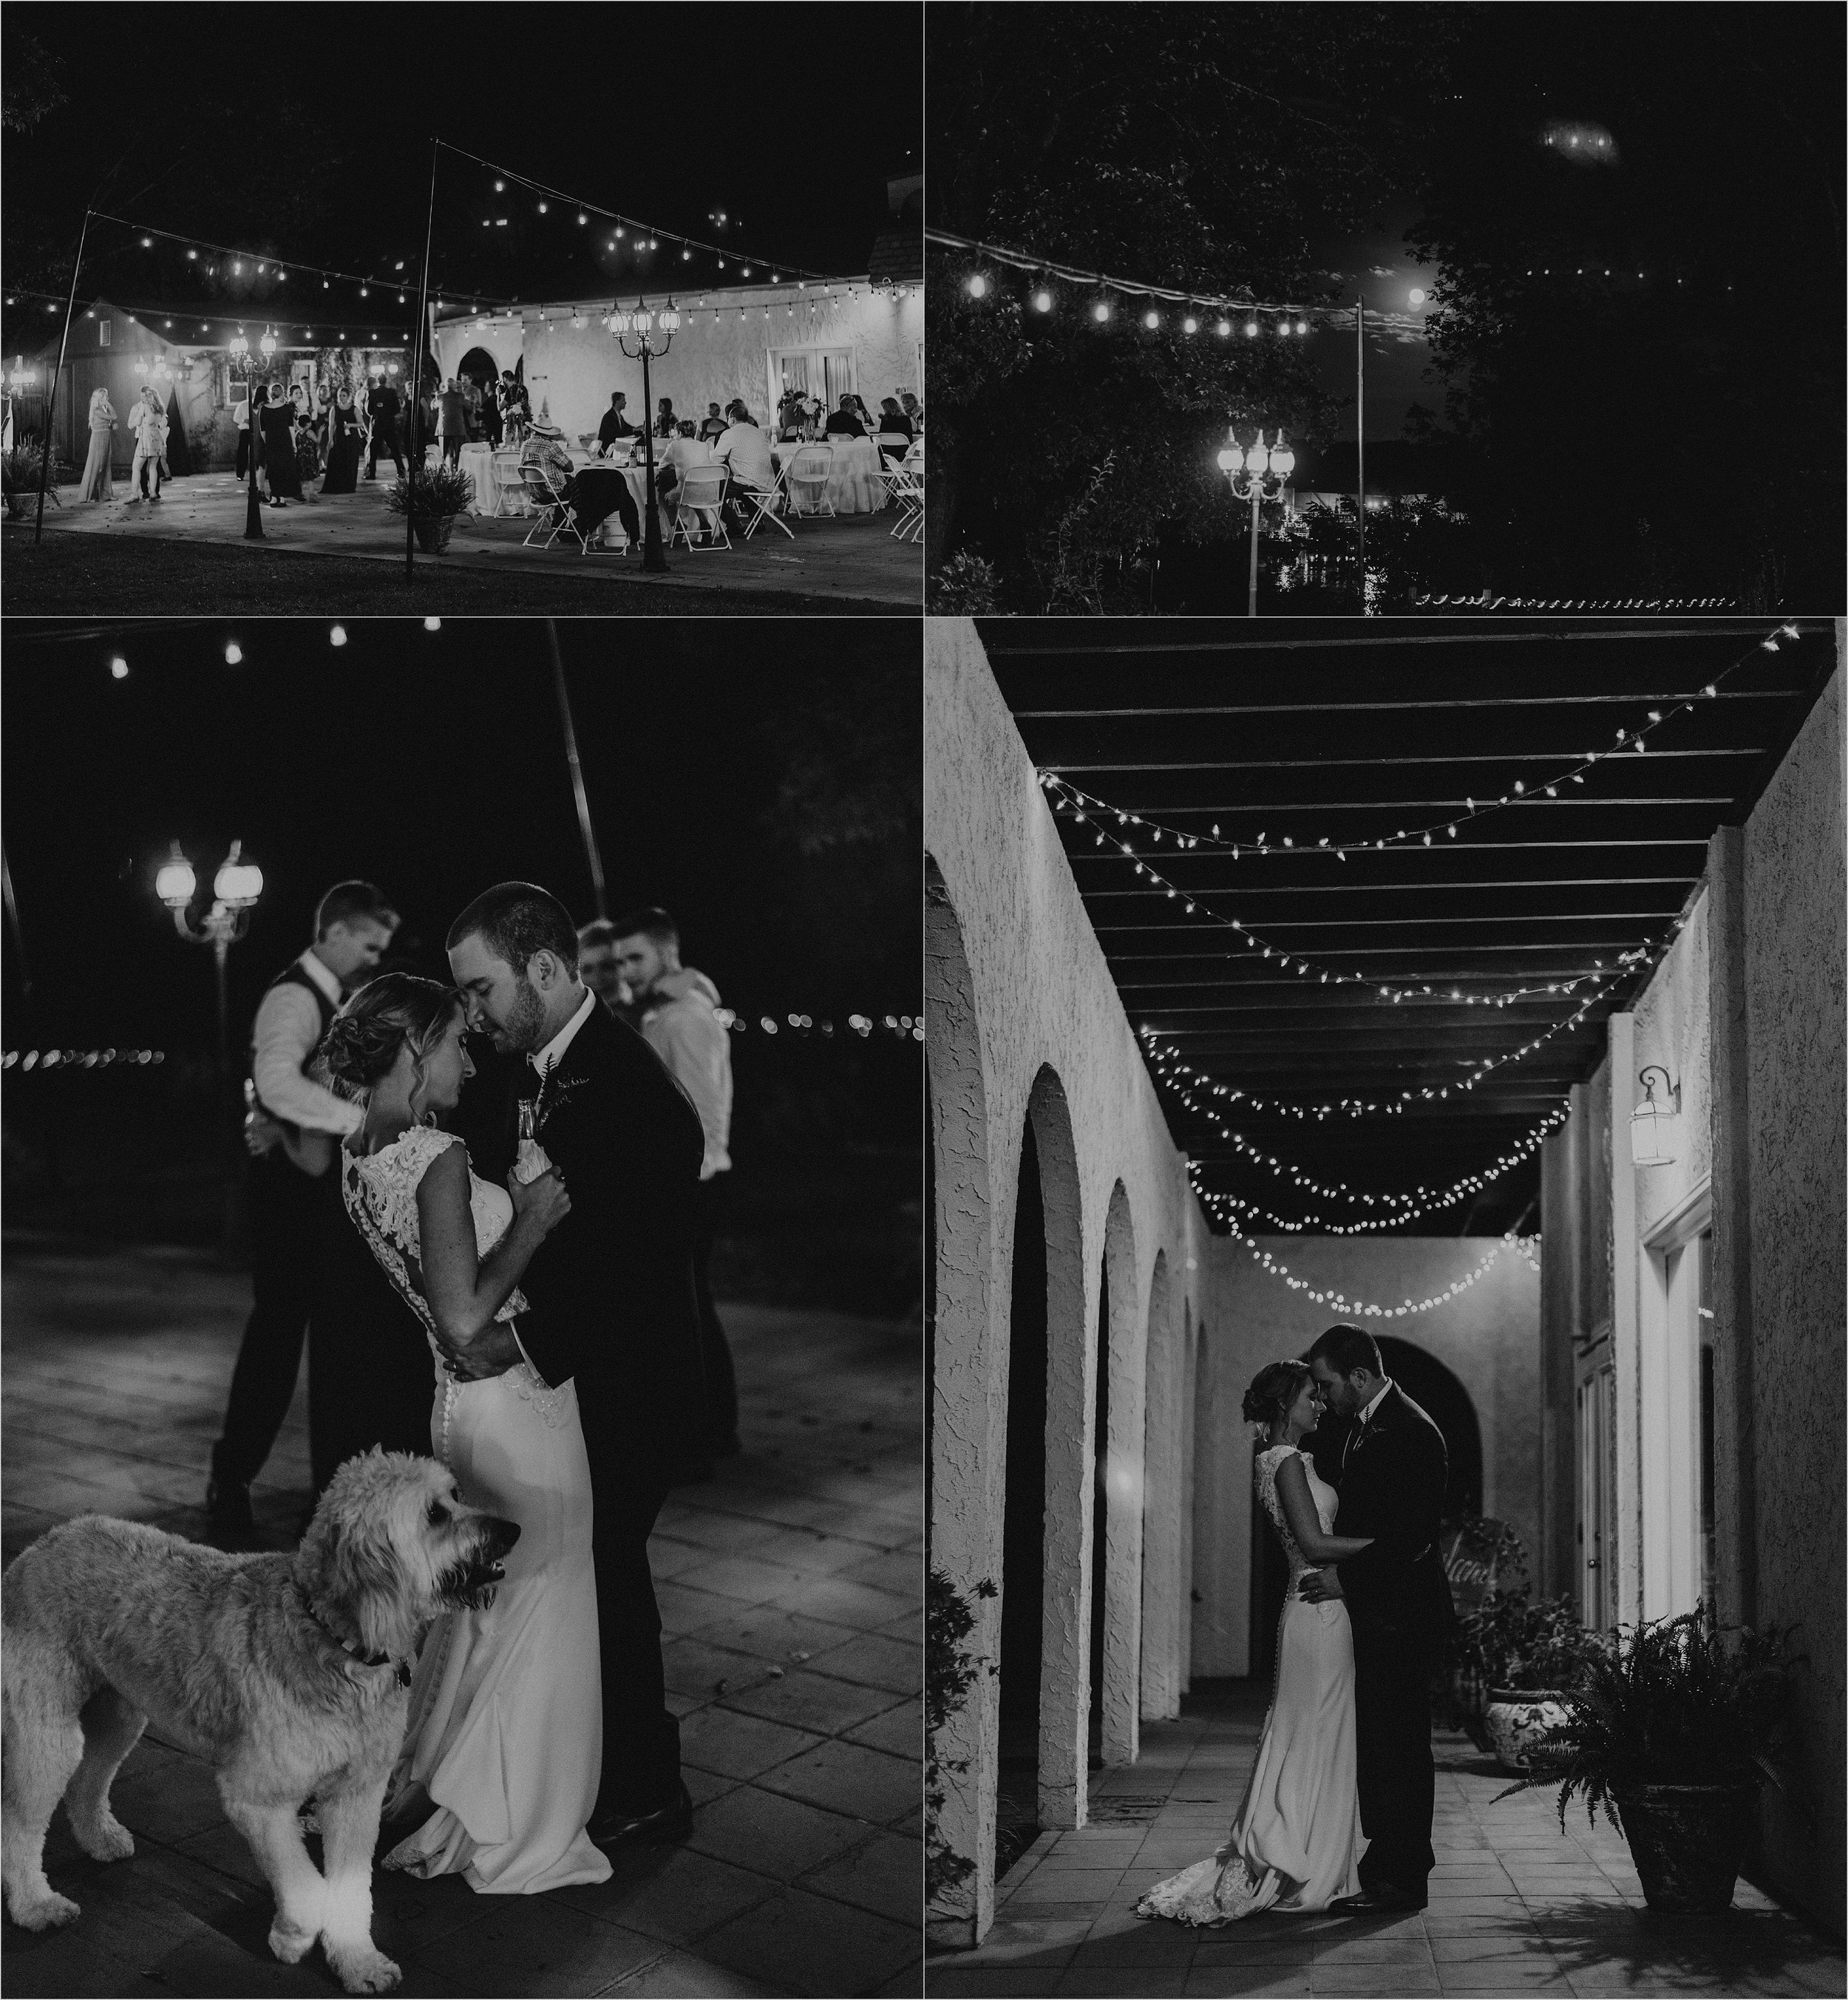 Wedding couple shares quiet moment after the reception